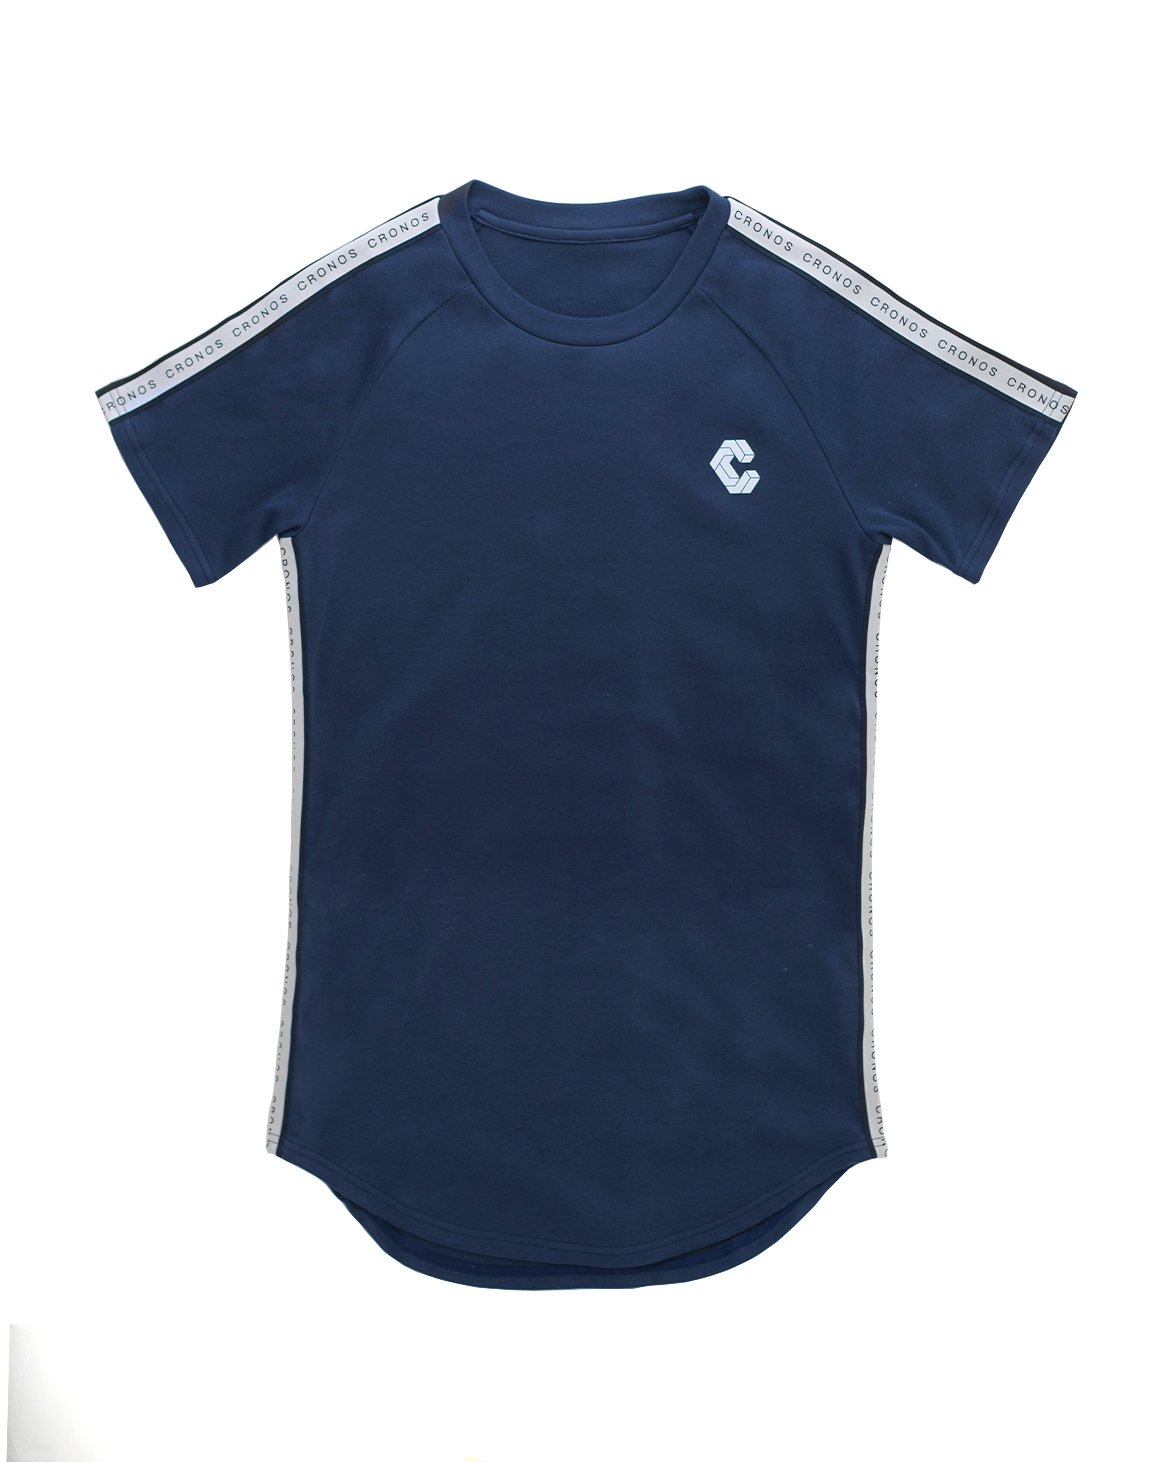 <img class='new_mark_img1' src='https://img.shop-pro.jp/img/new/icons55.gif' style='border:none;display:inline;margin:0px;padding:0px;width:auto;' />CRONOS LOGO STRIPE T-SHIRTS【NAVY】